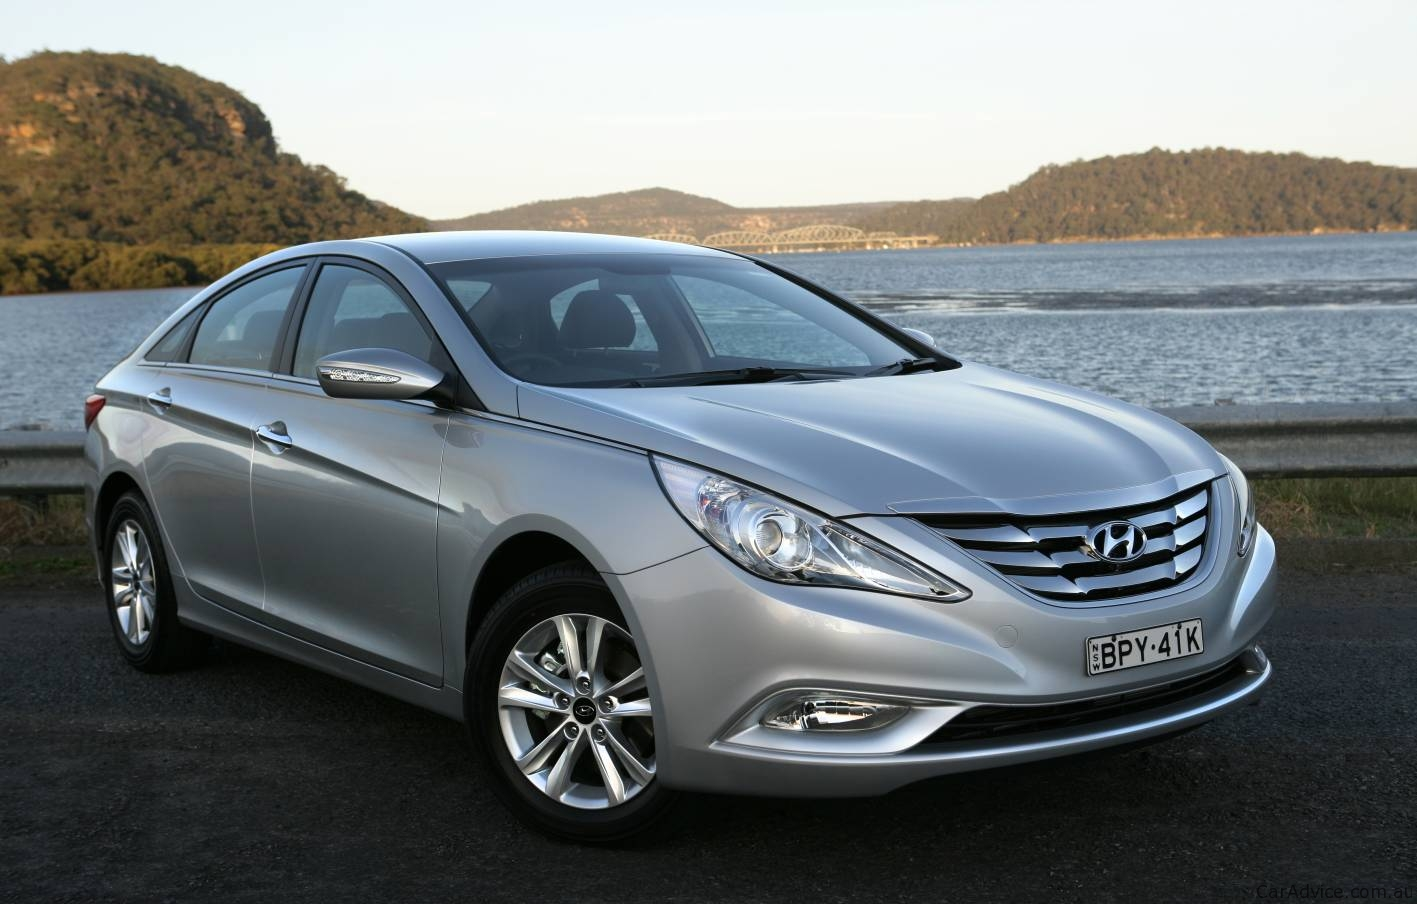 2011 Hyundai I45 Active New 20 Litre Engine Cuts Price